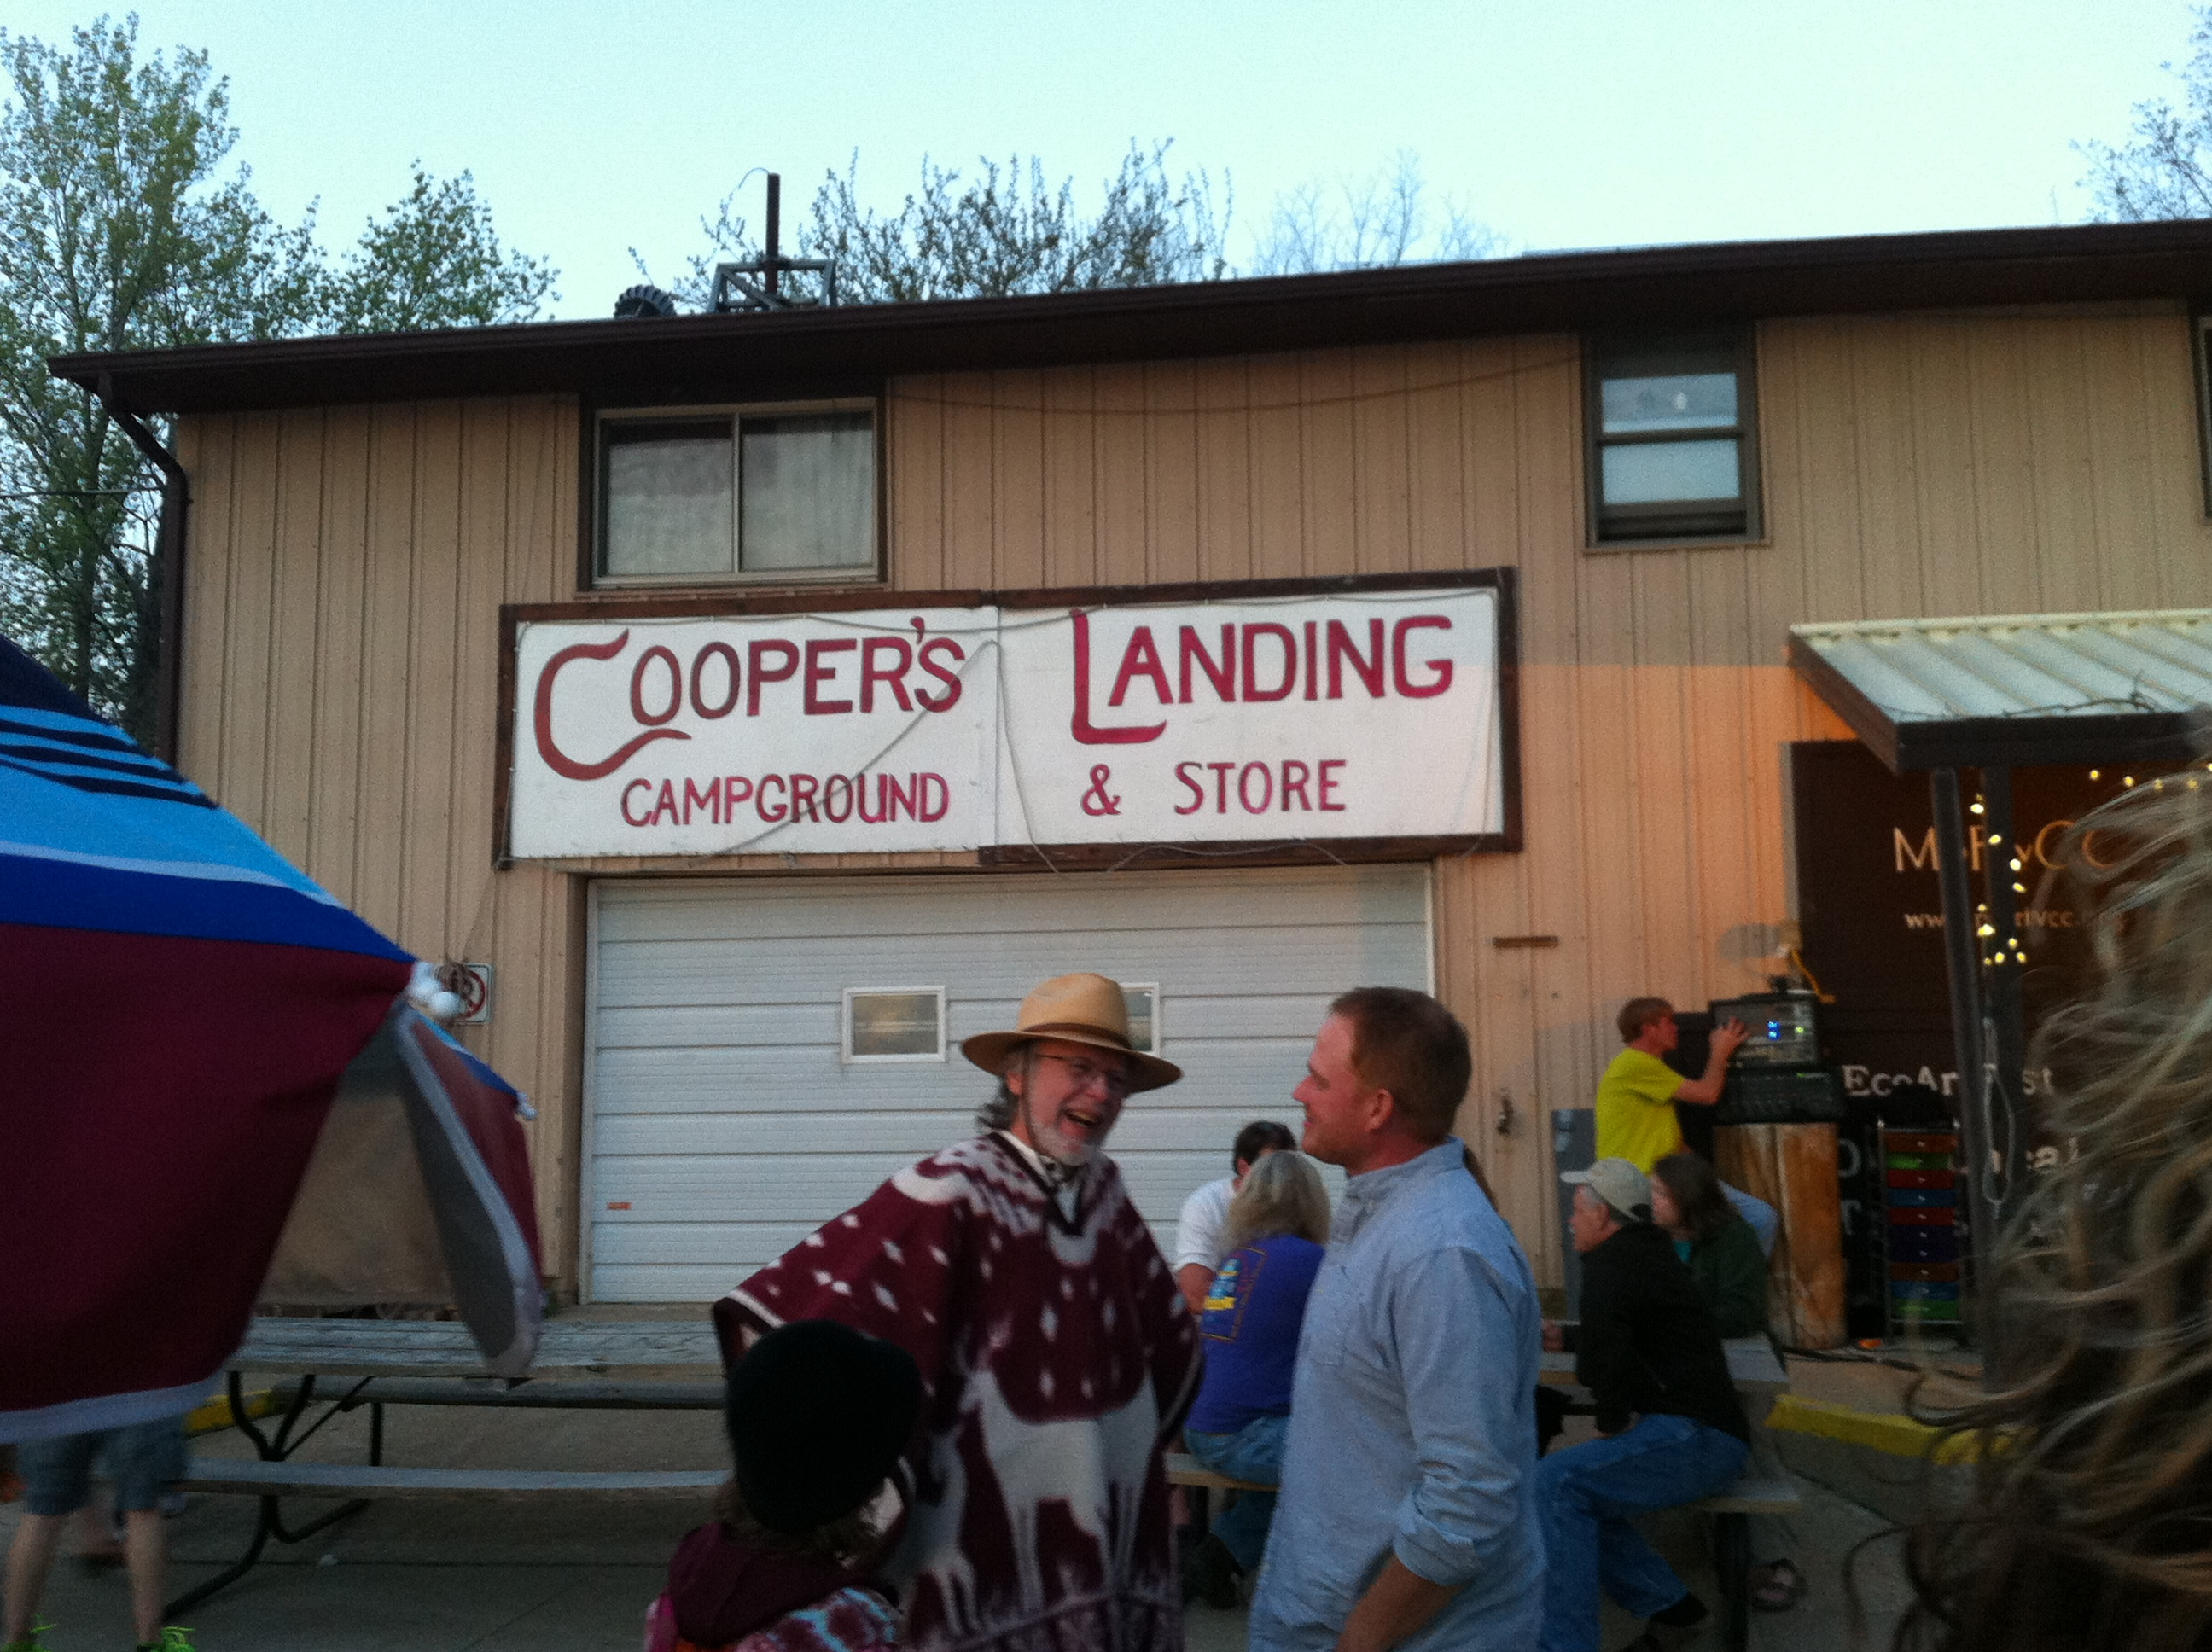 cooper landing asian single men Find 13 listings related to two men and a truck in cooper landing on ypcom see reviews, photos, directions, phone numbers and more for two men and a truck locations in cooper landing, ak.